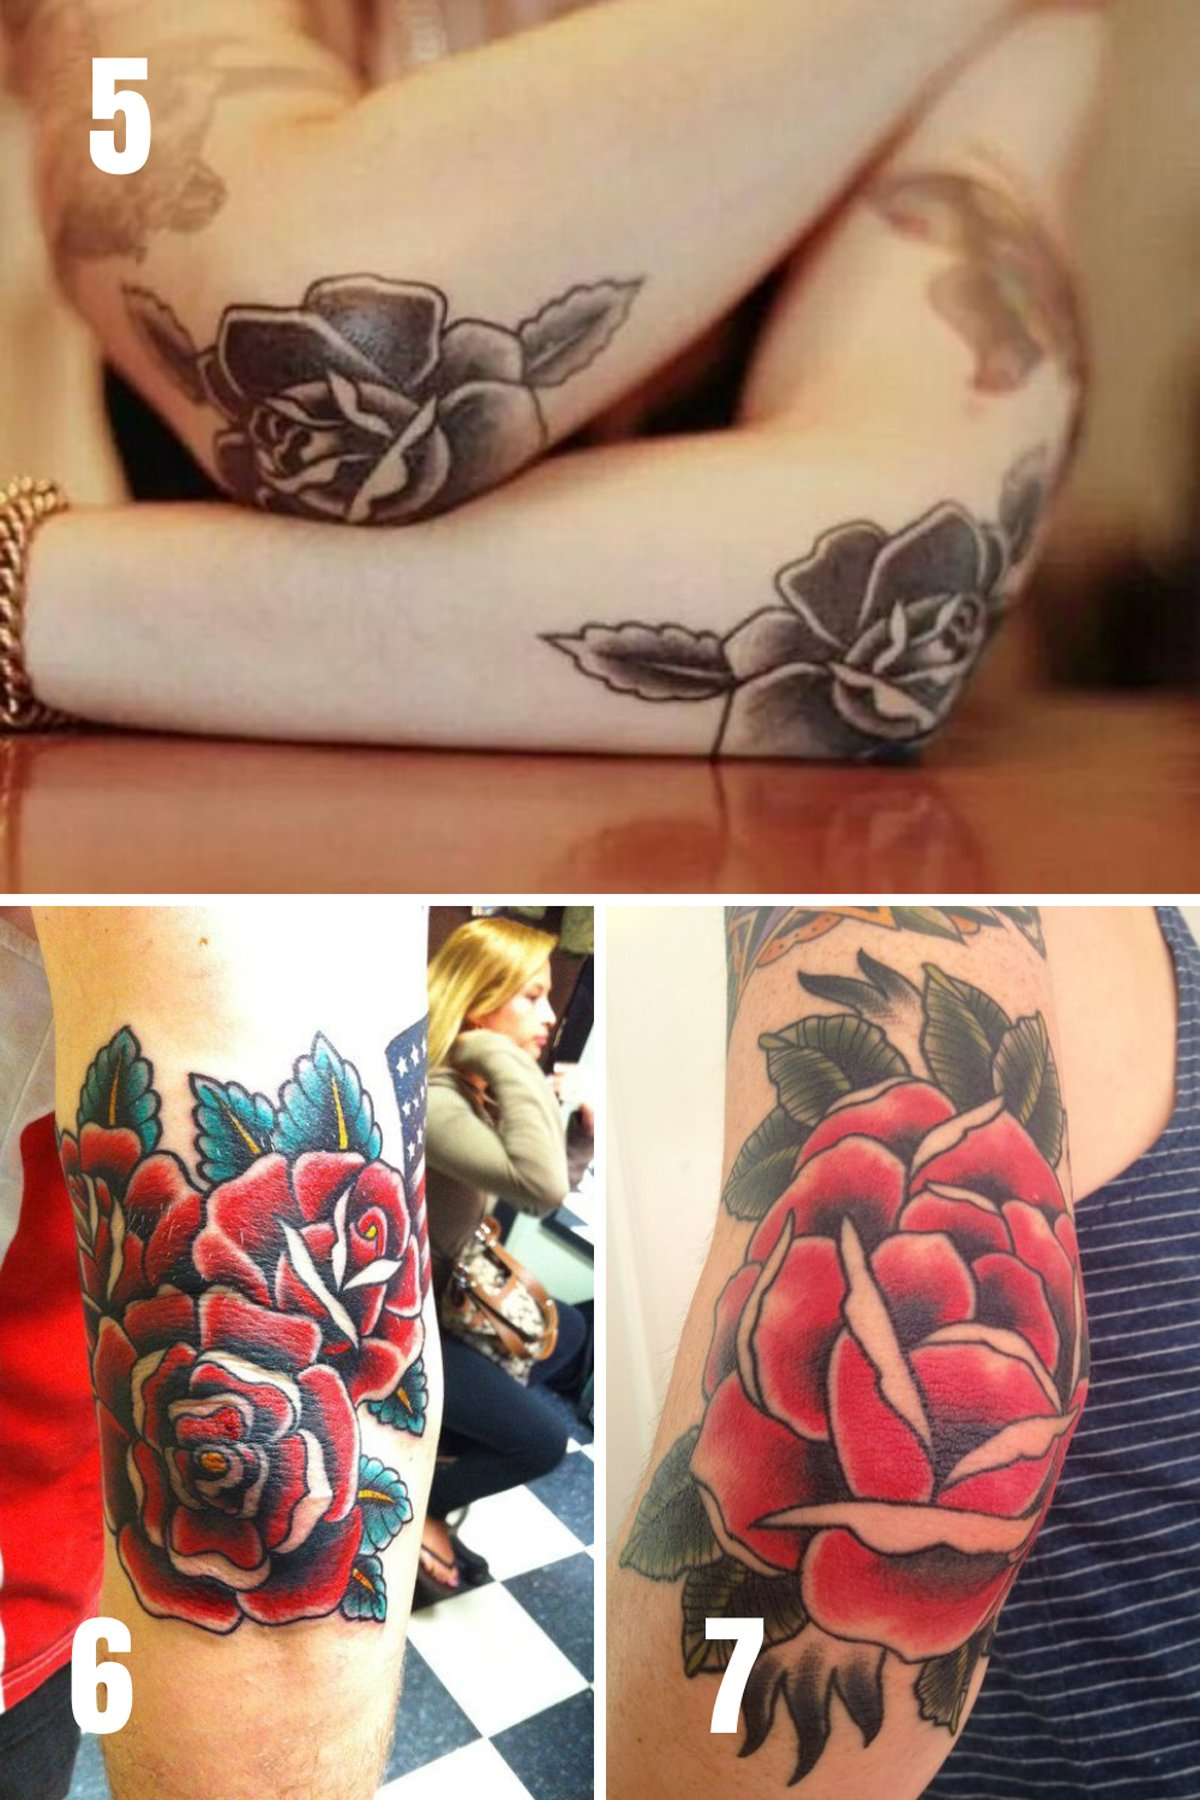 Flower tattoos for elbows